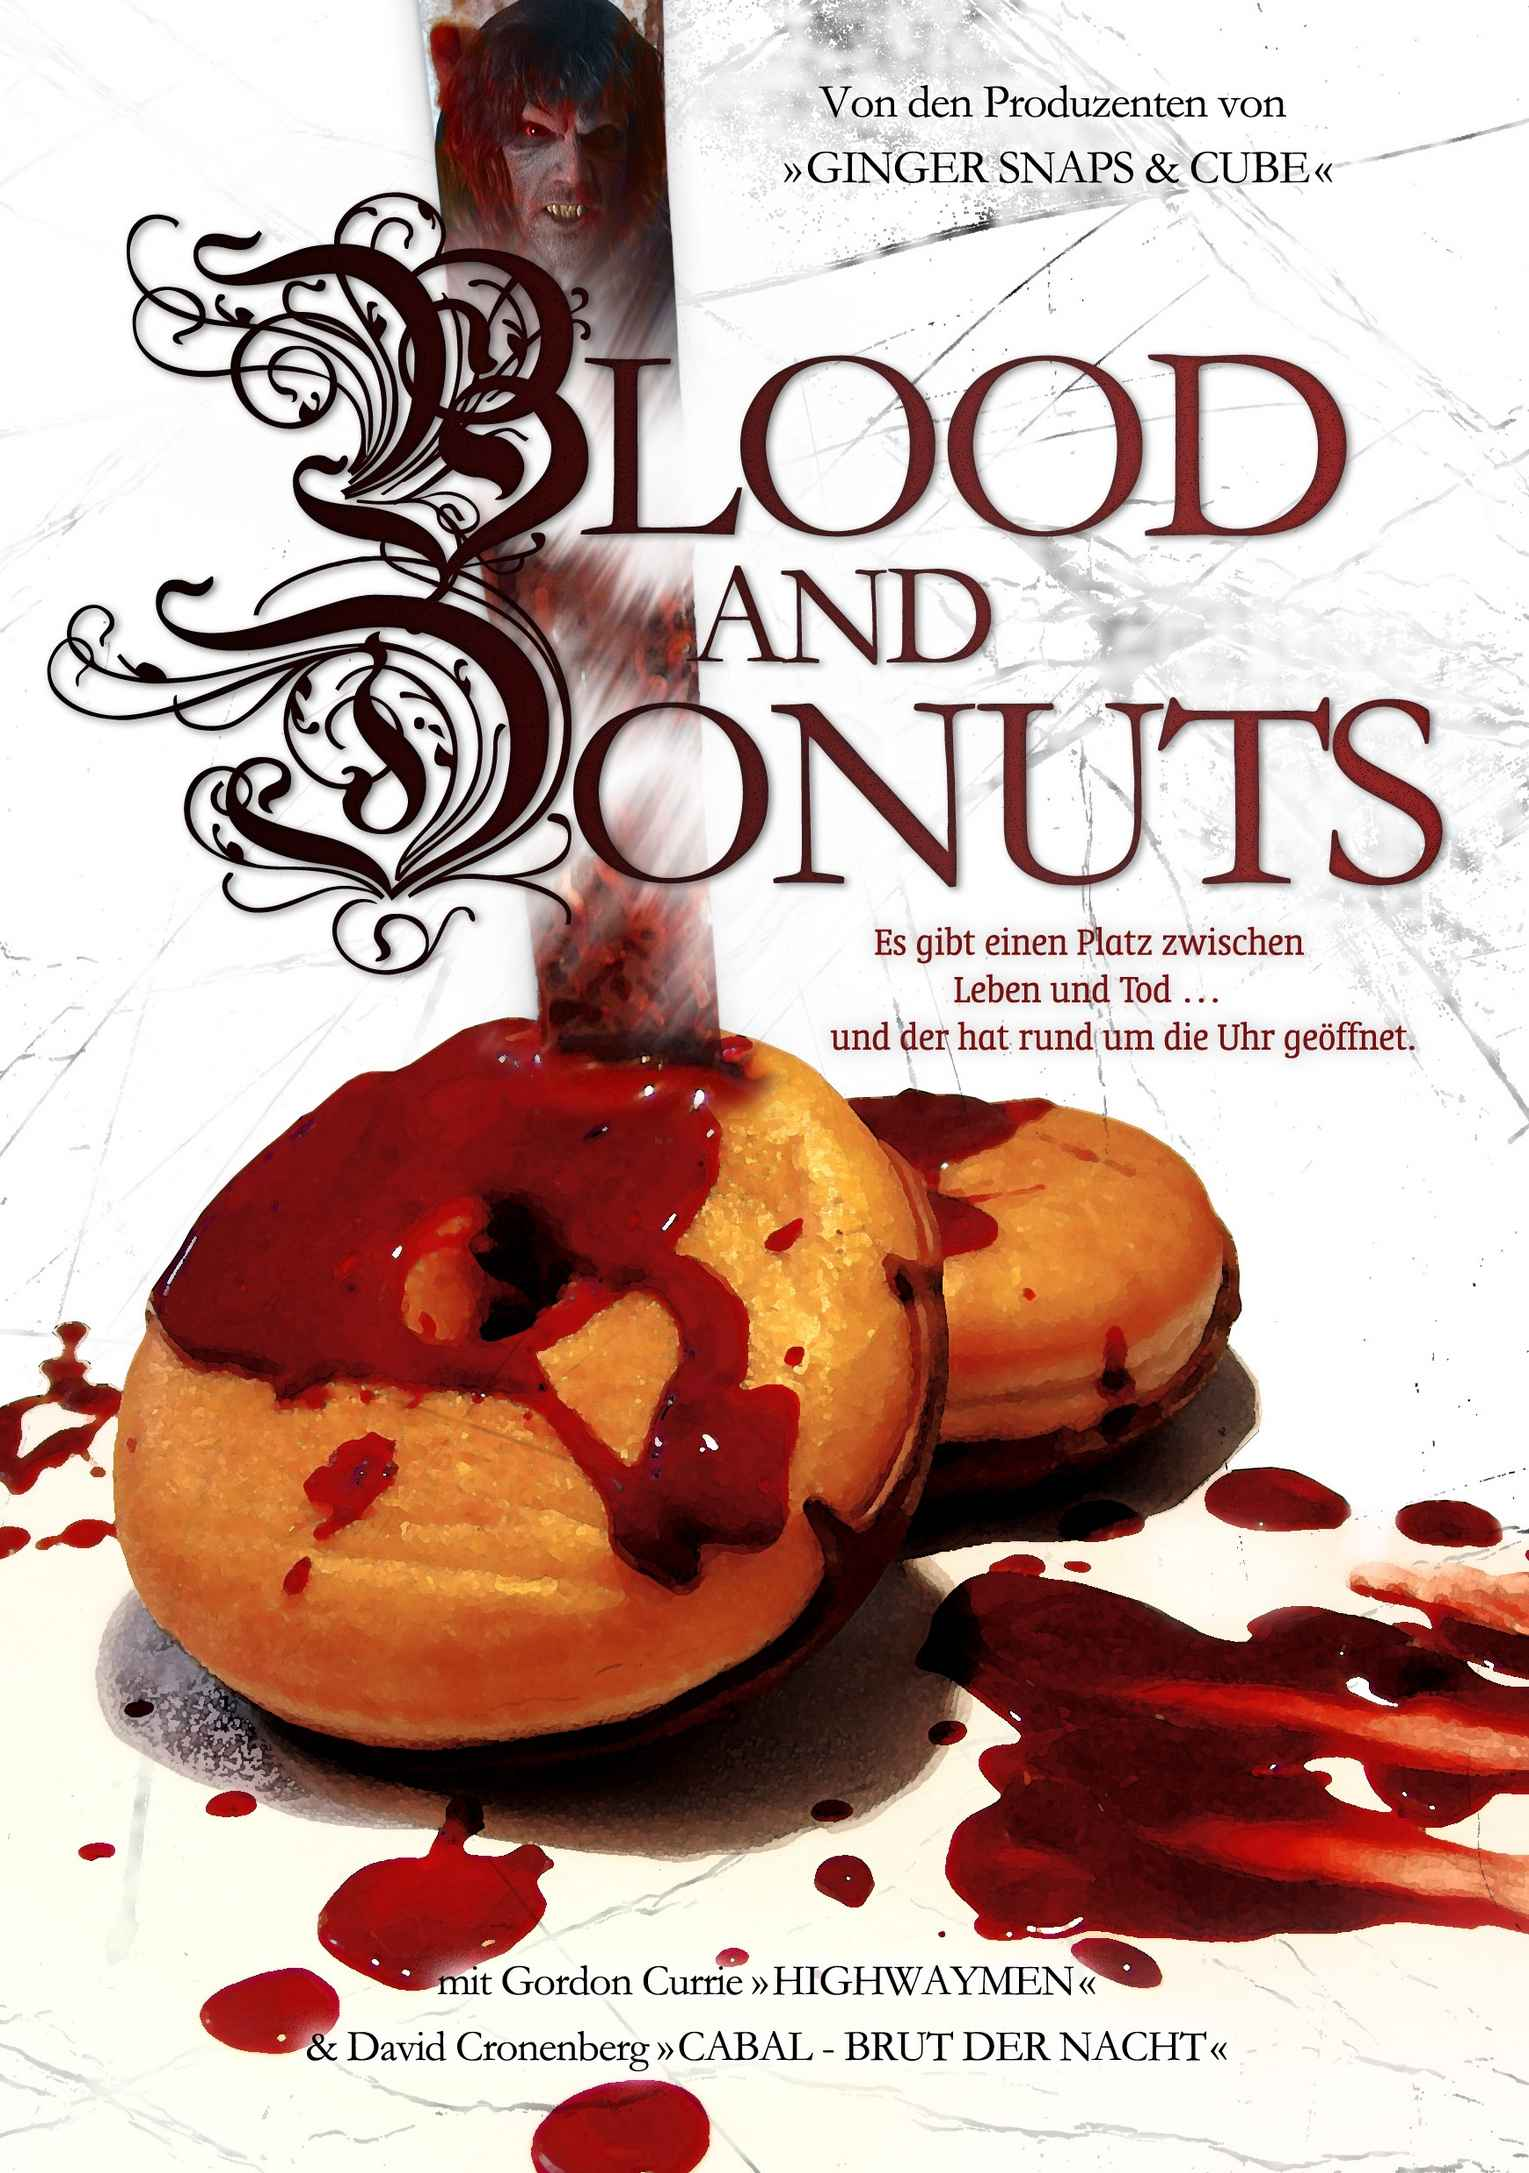 blood & donuts Cover Front FINAL Hochauslösend